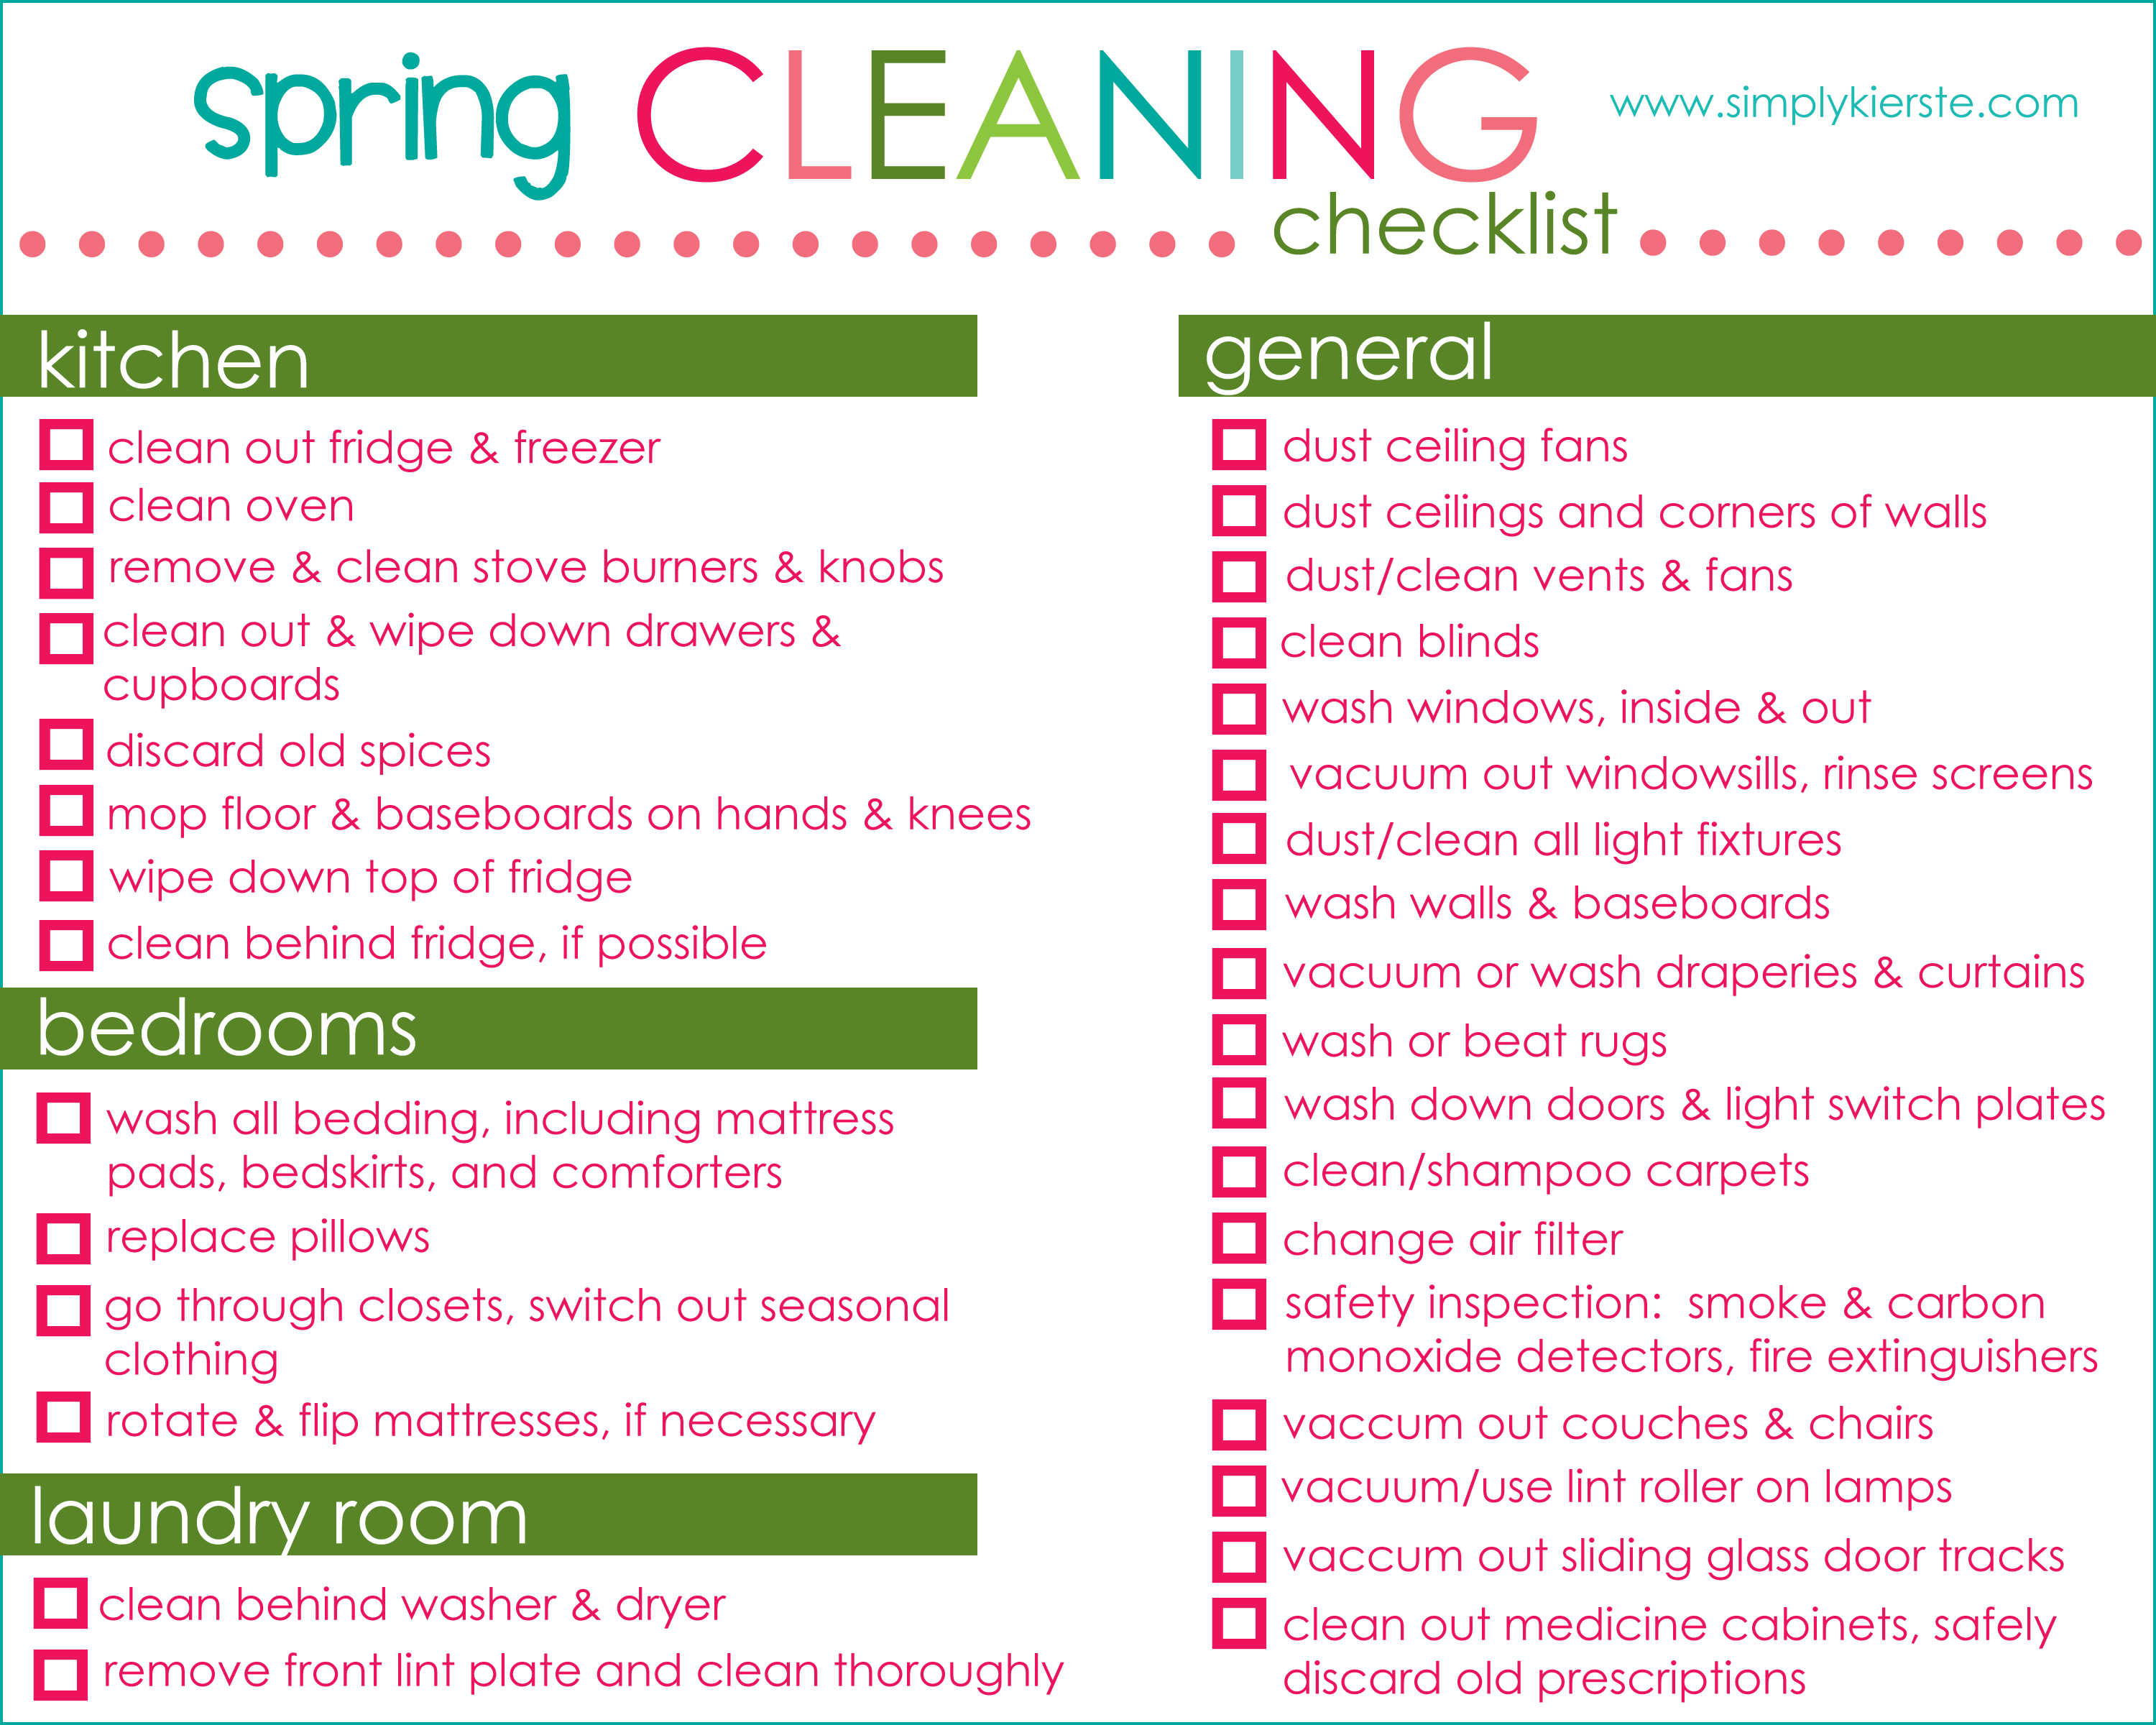 9 Images of Cleaning Checklist Printable